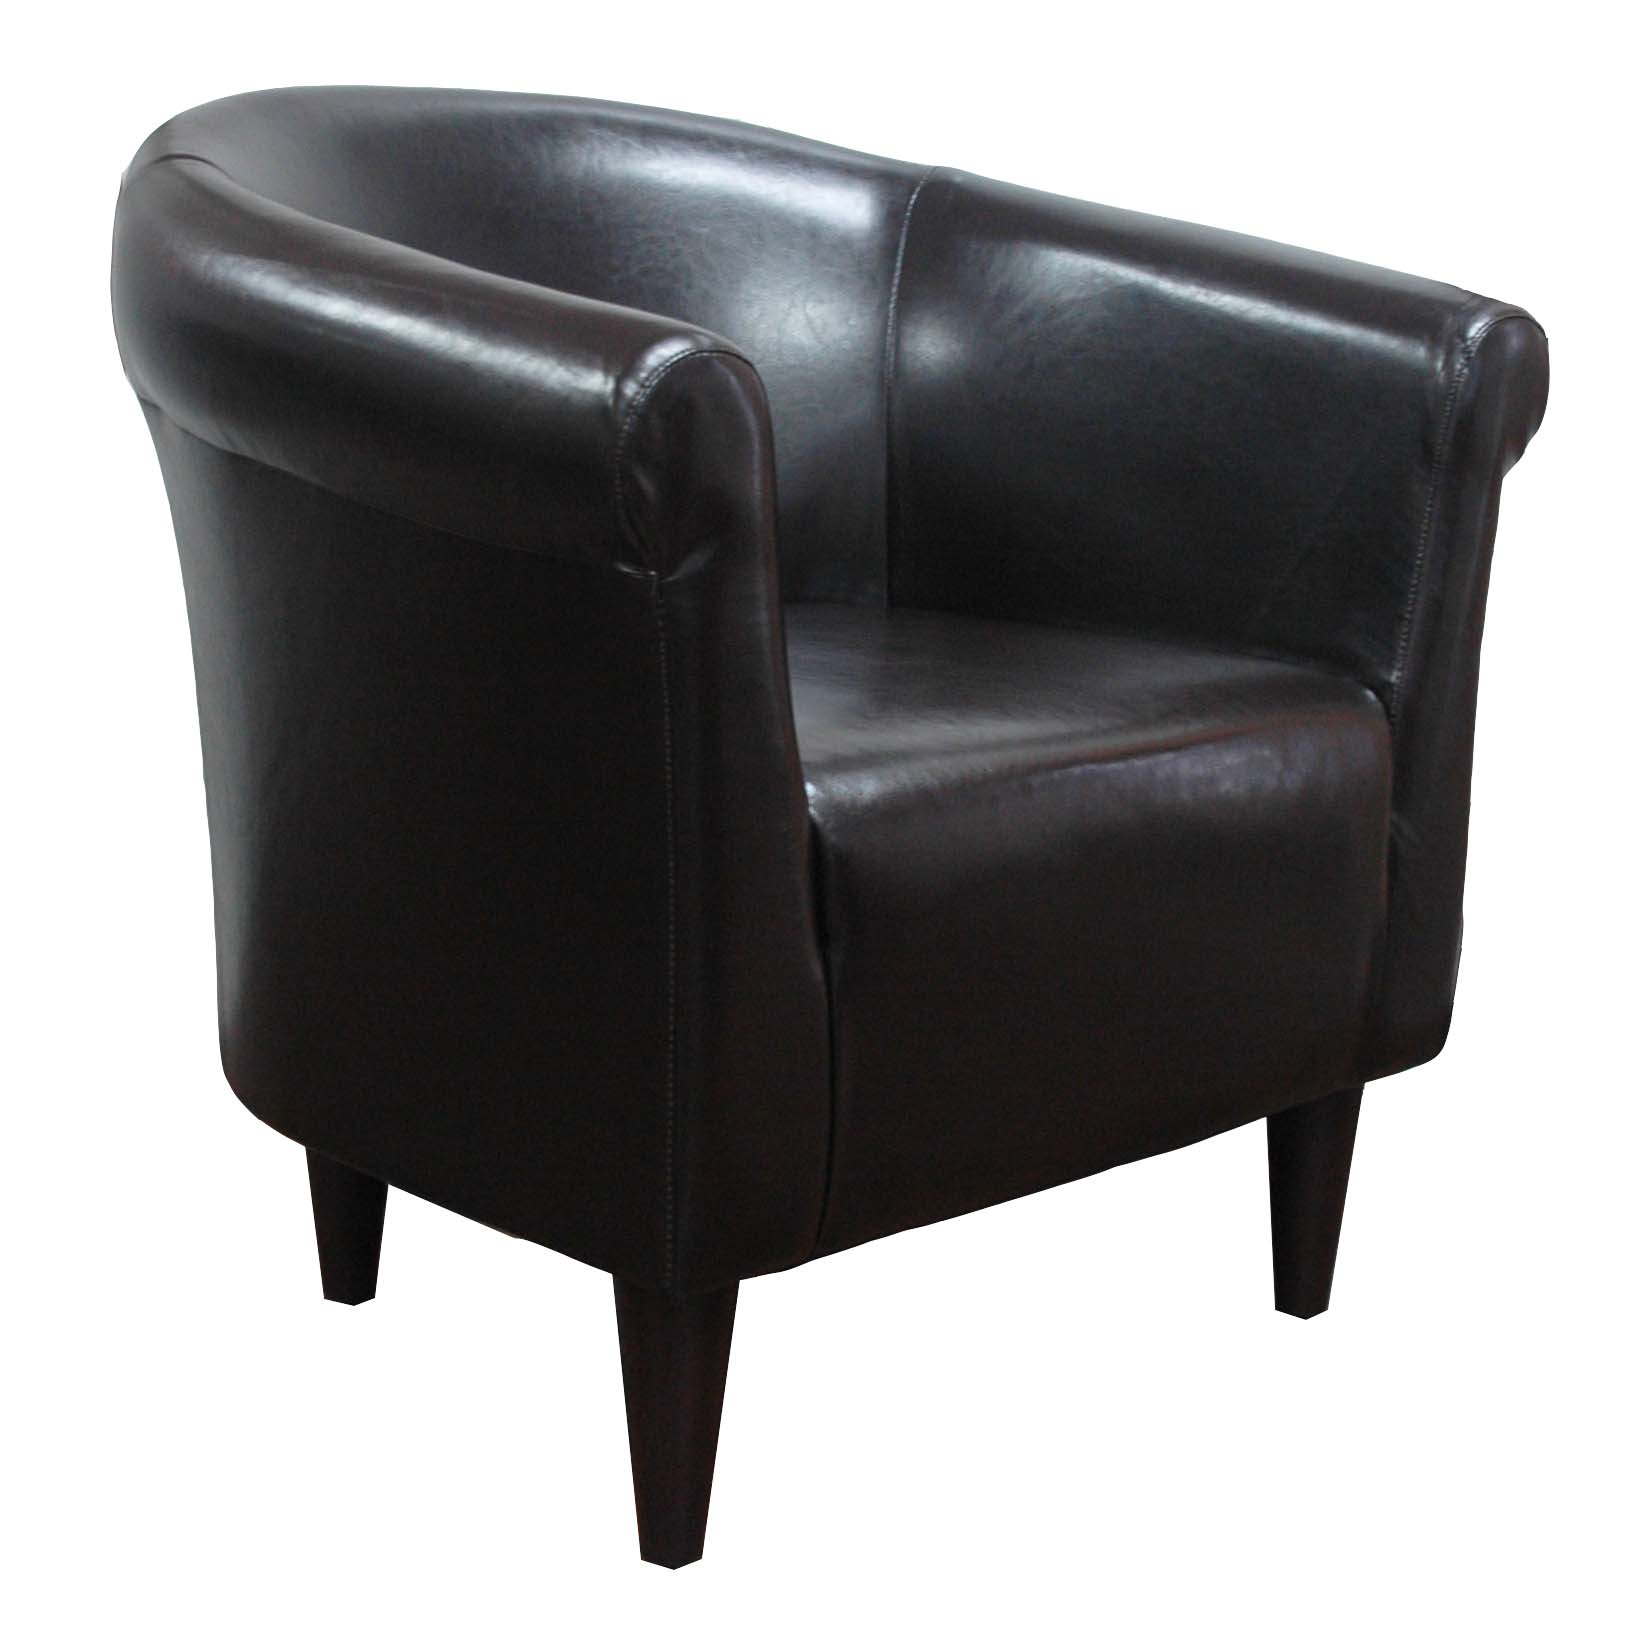 Newport Club Chair - Leatherette Walnut